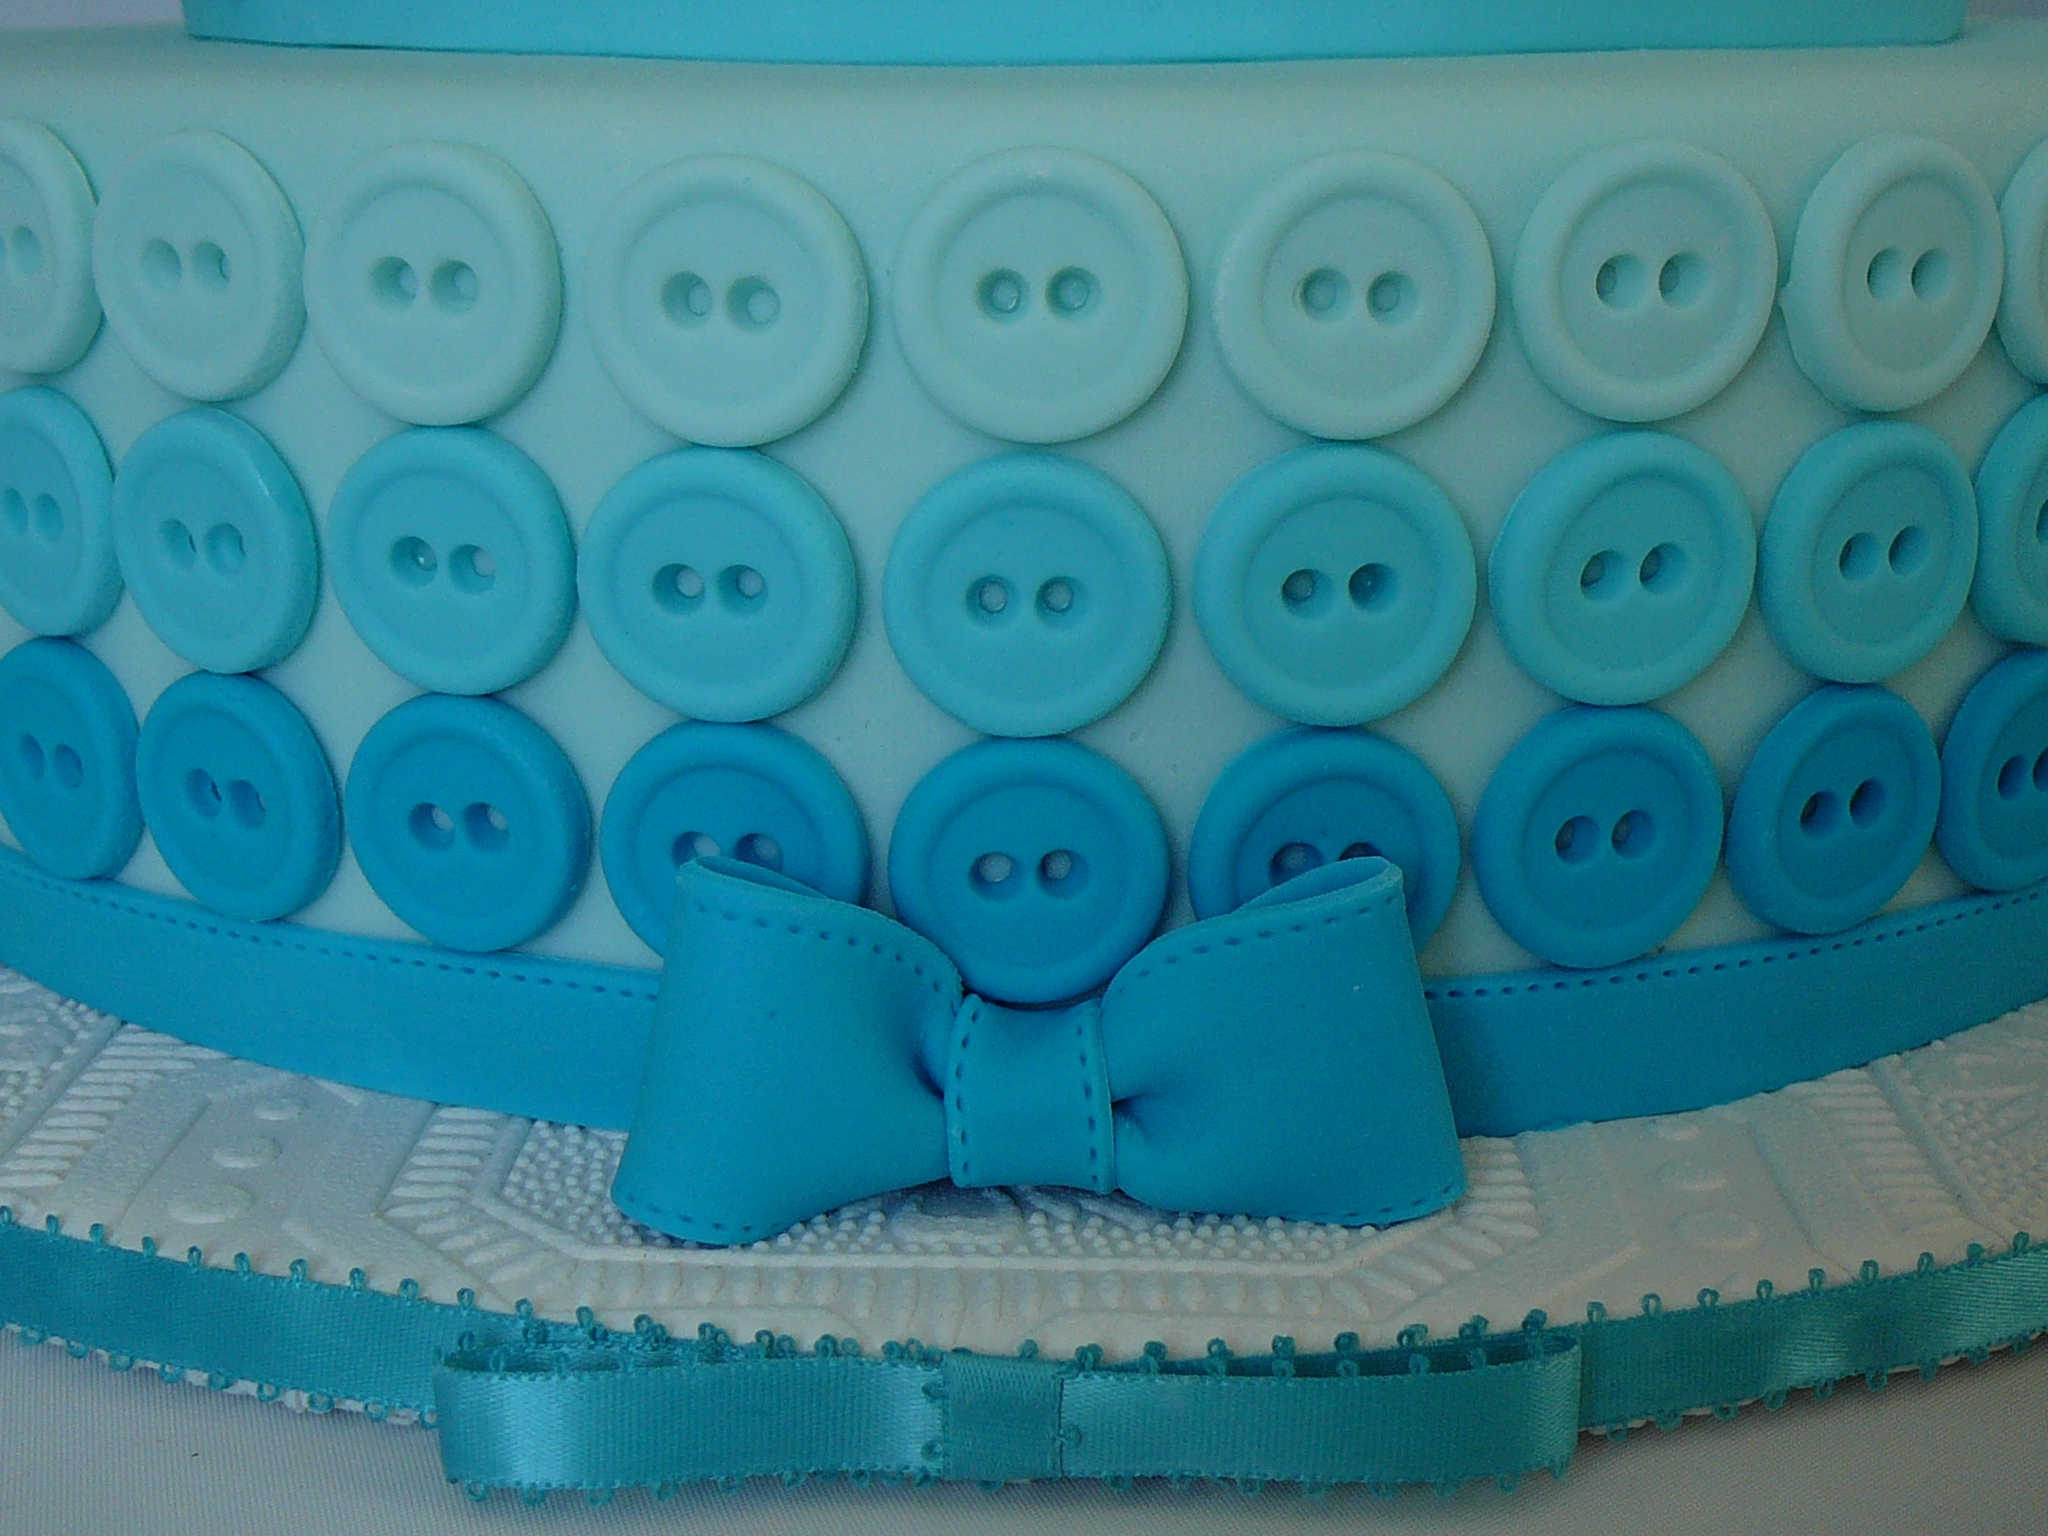 c0ff4ad7dc44 Converse and buttons shower cake. I also made baby clothing to put on a  clothes line on the second tier of the cake. Vanilla cake with buttercream  and ...